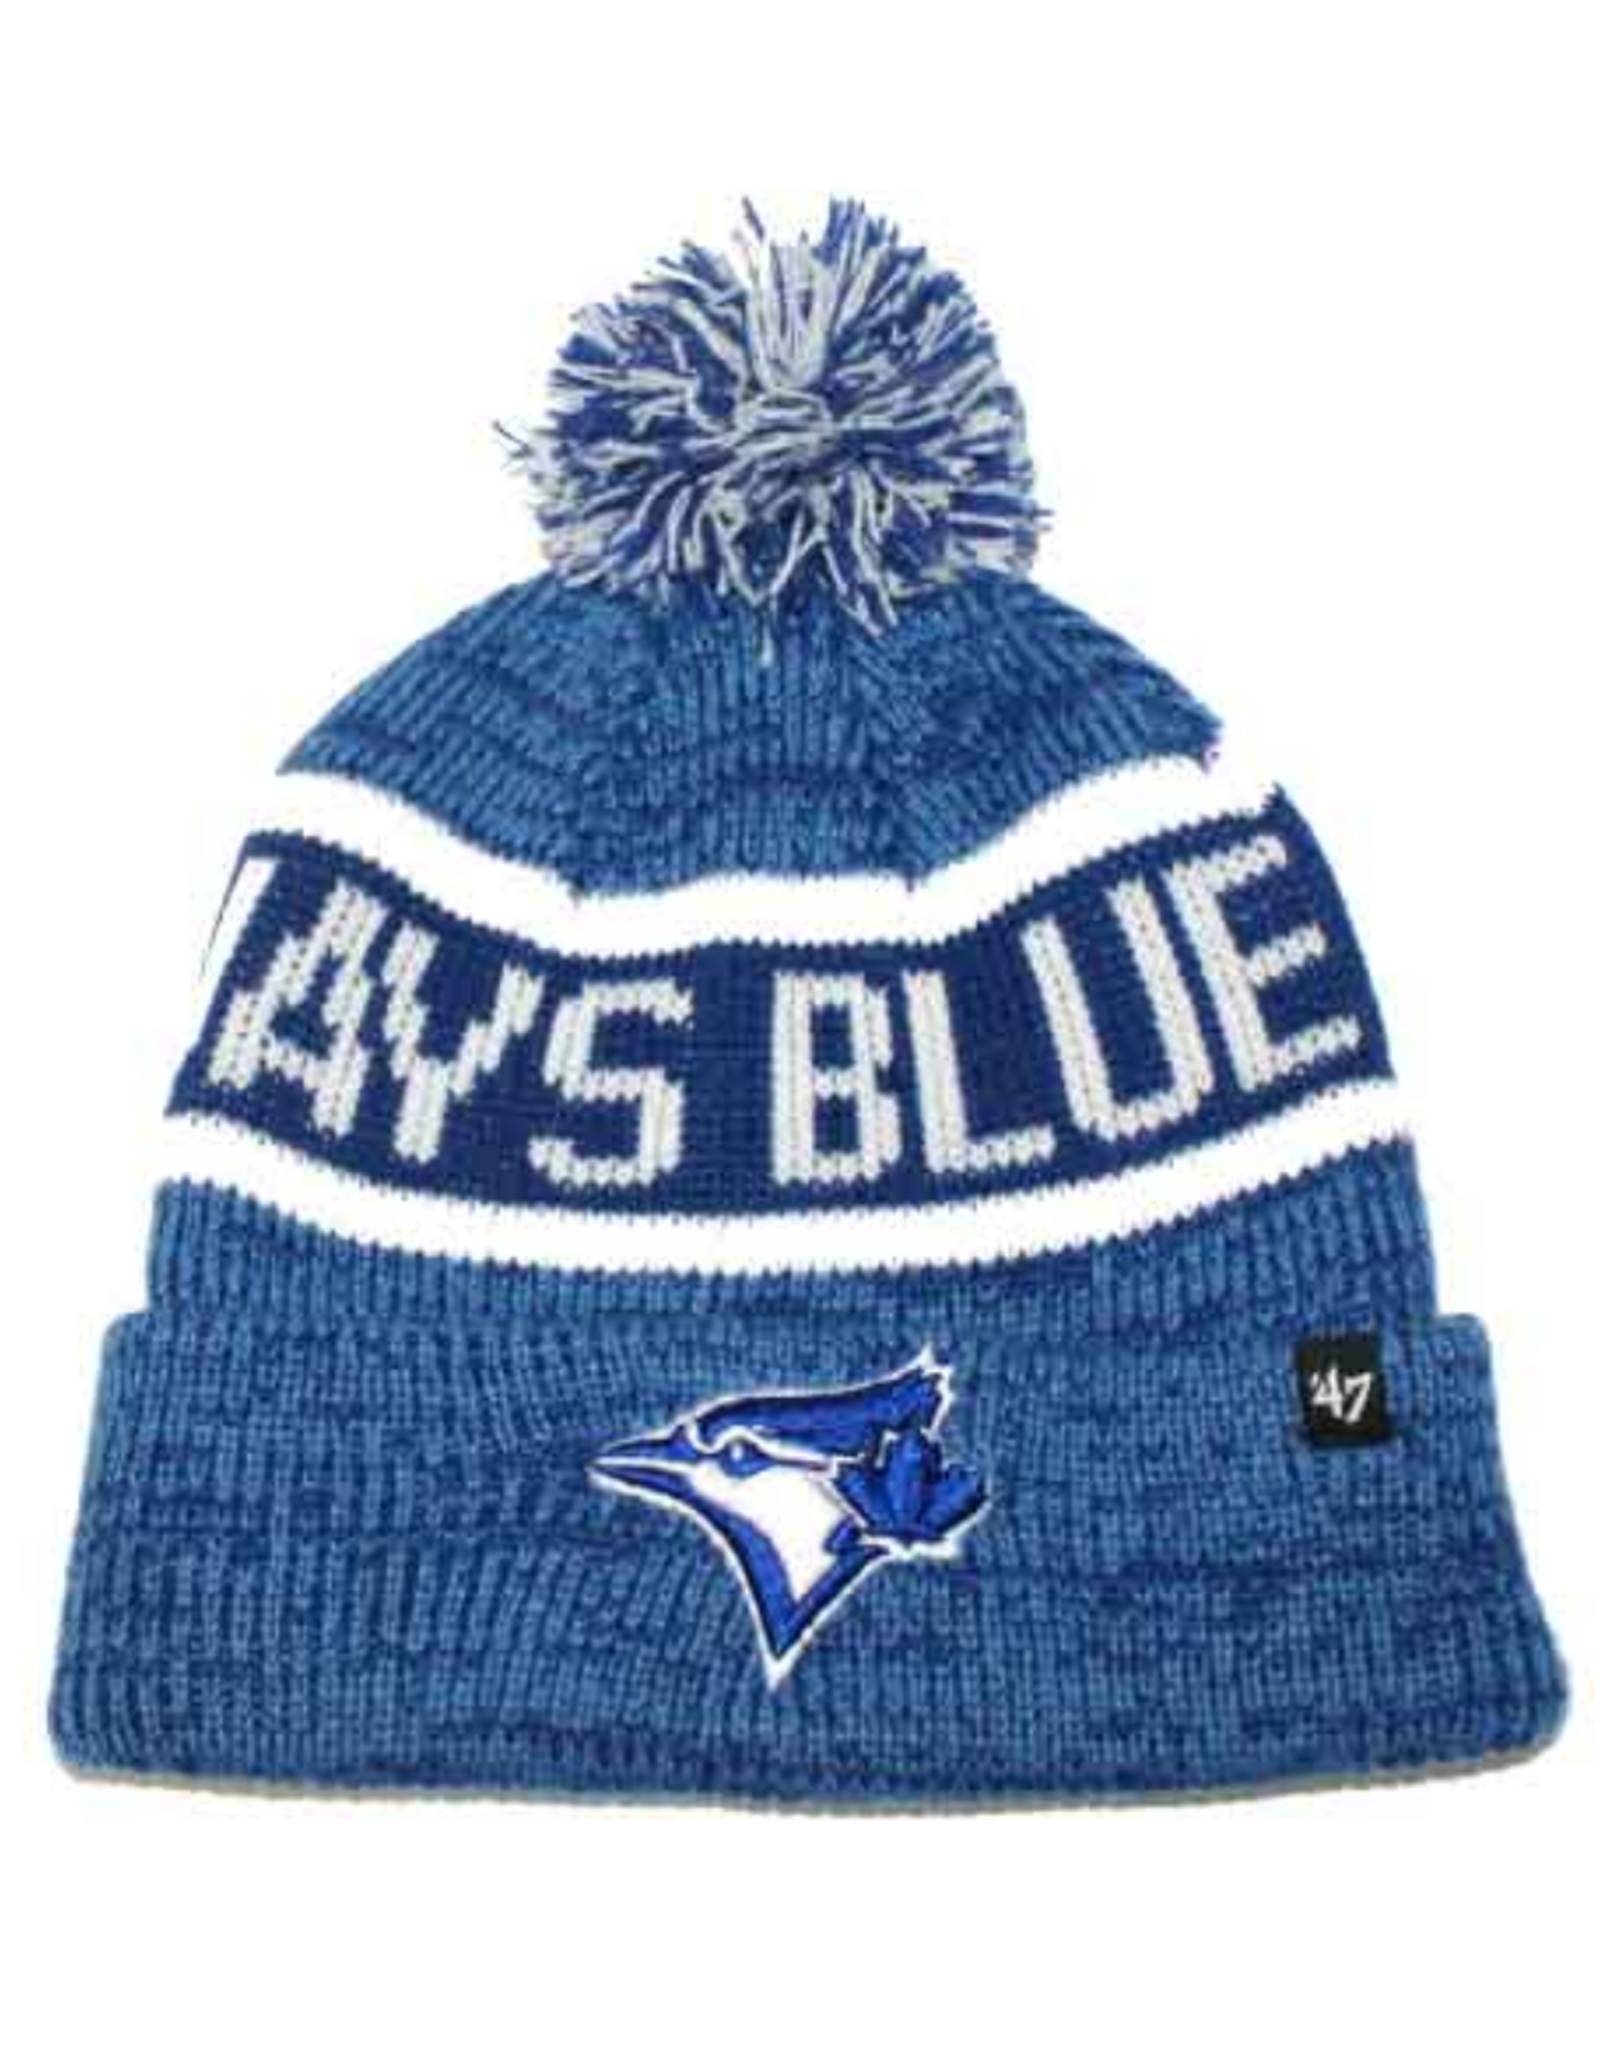 '47 Youth Tadpole Cuff Knit Toronto Blue Jays Blue